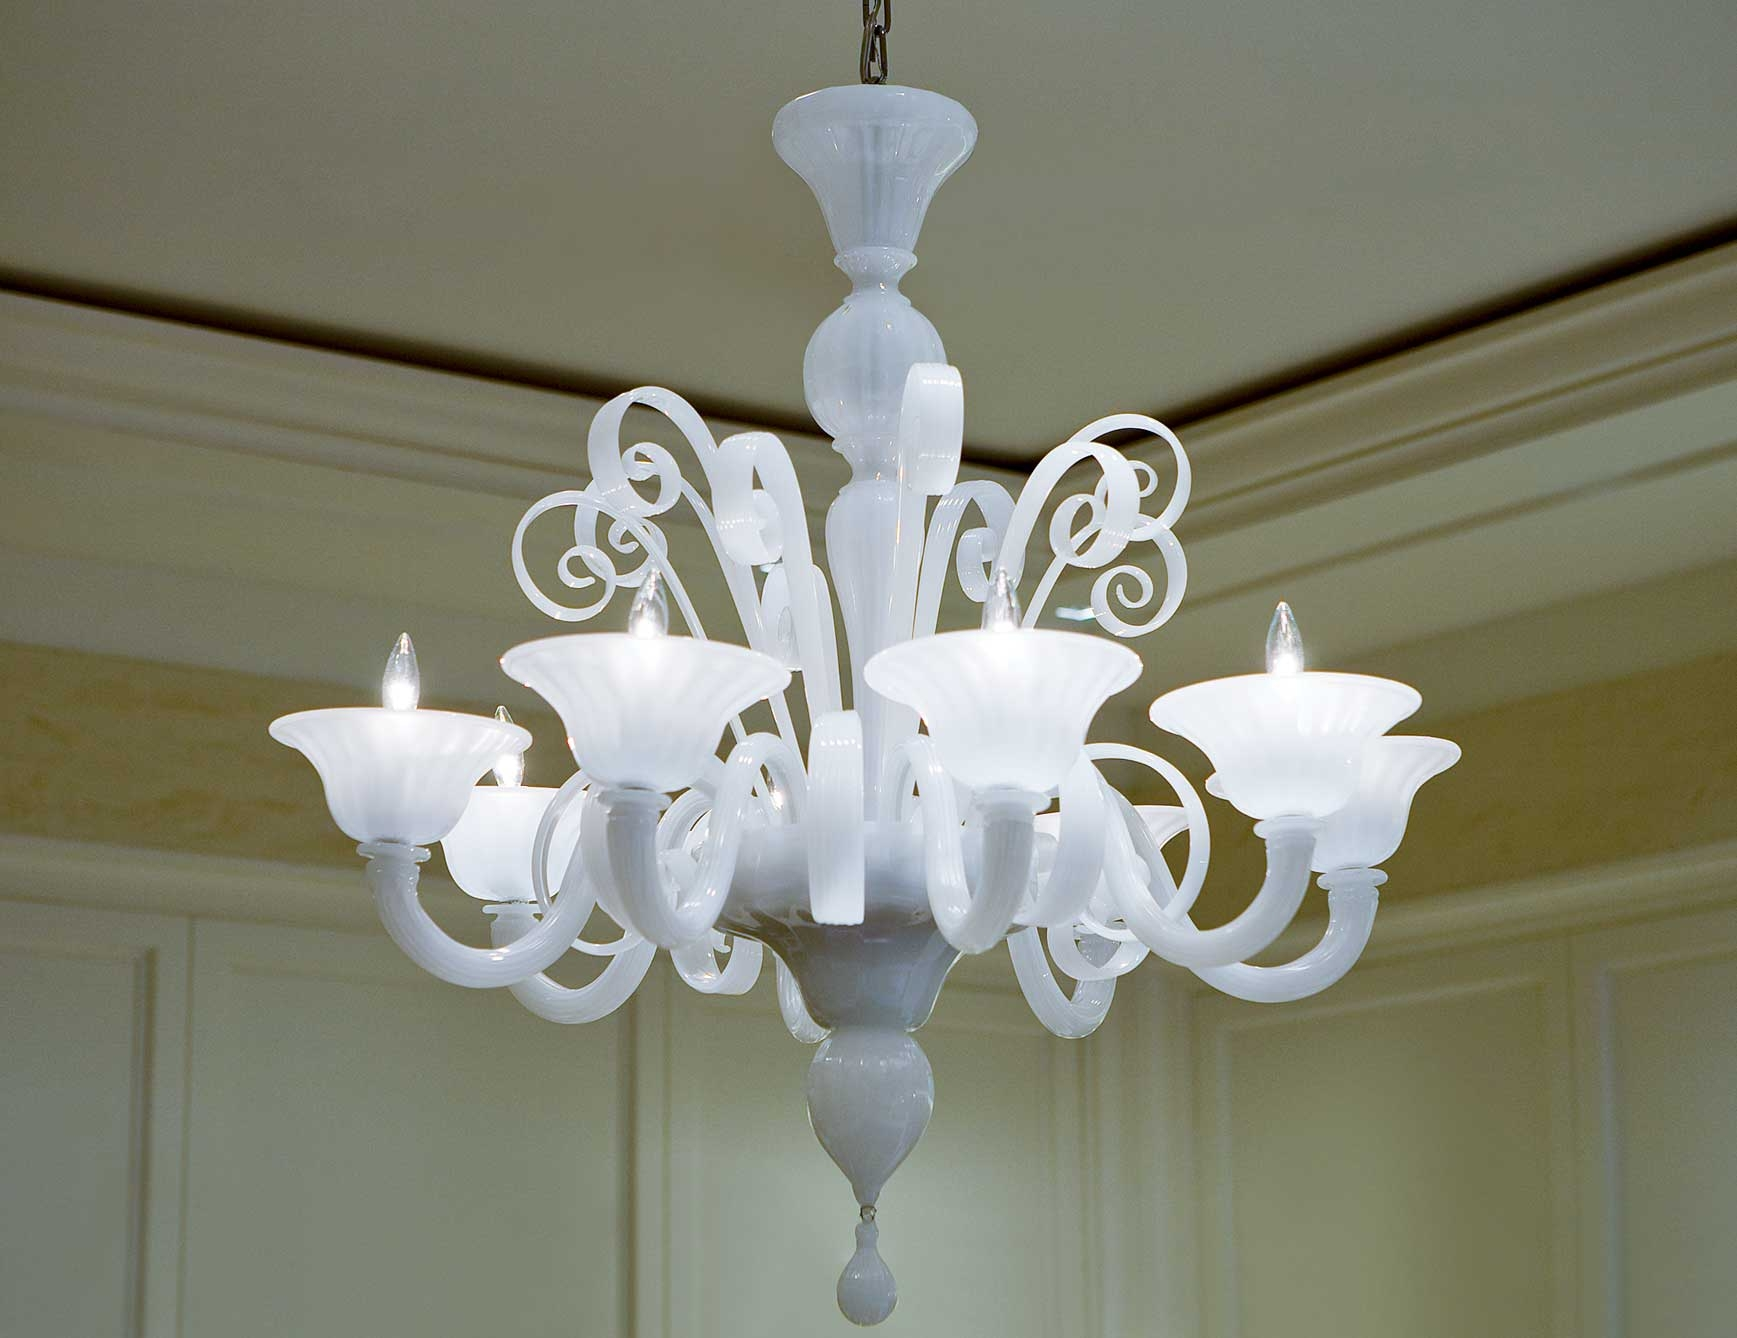 Murano Glass Chandeliers Italian Designer Luxury Chandeliers With Regard To Murano Chandelier (Image 12 of 15)